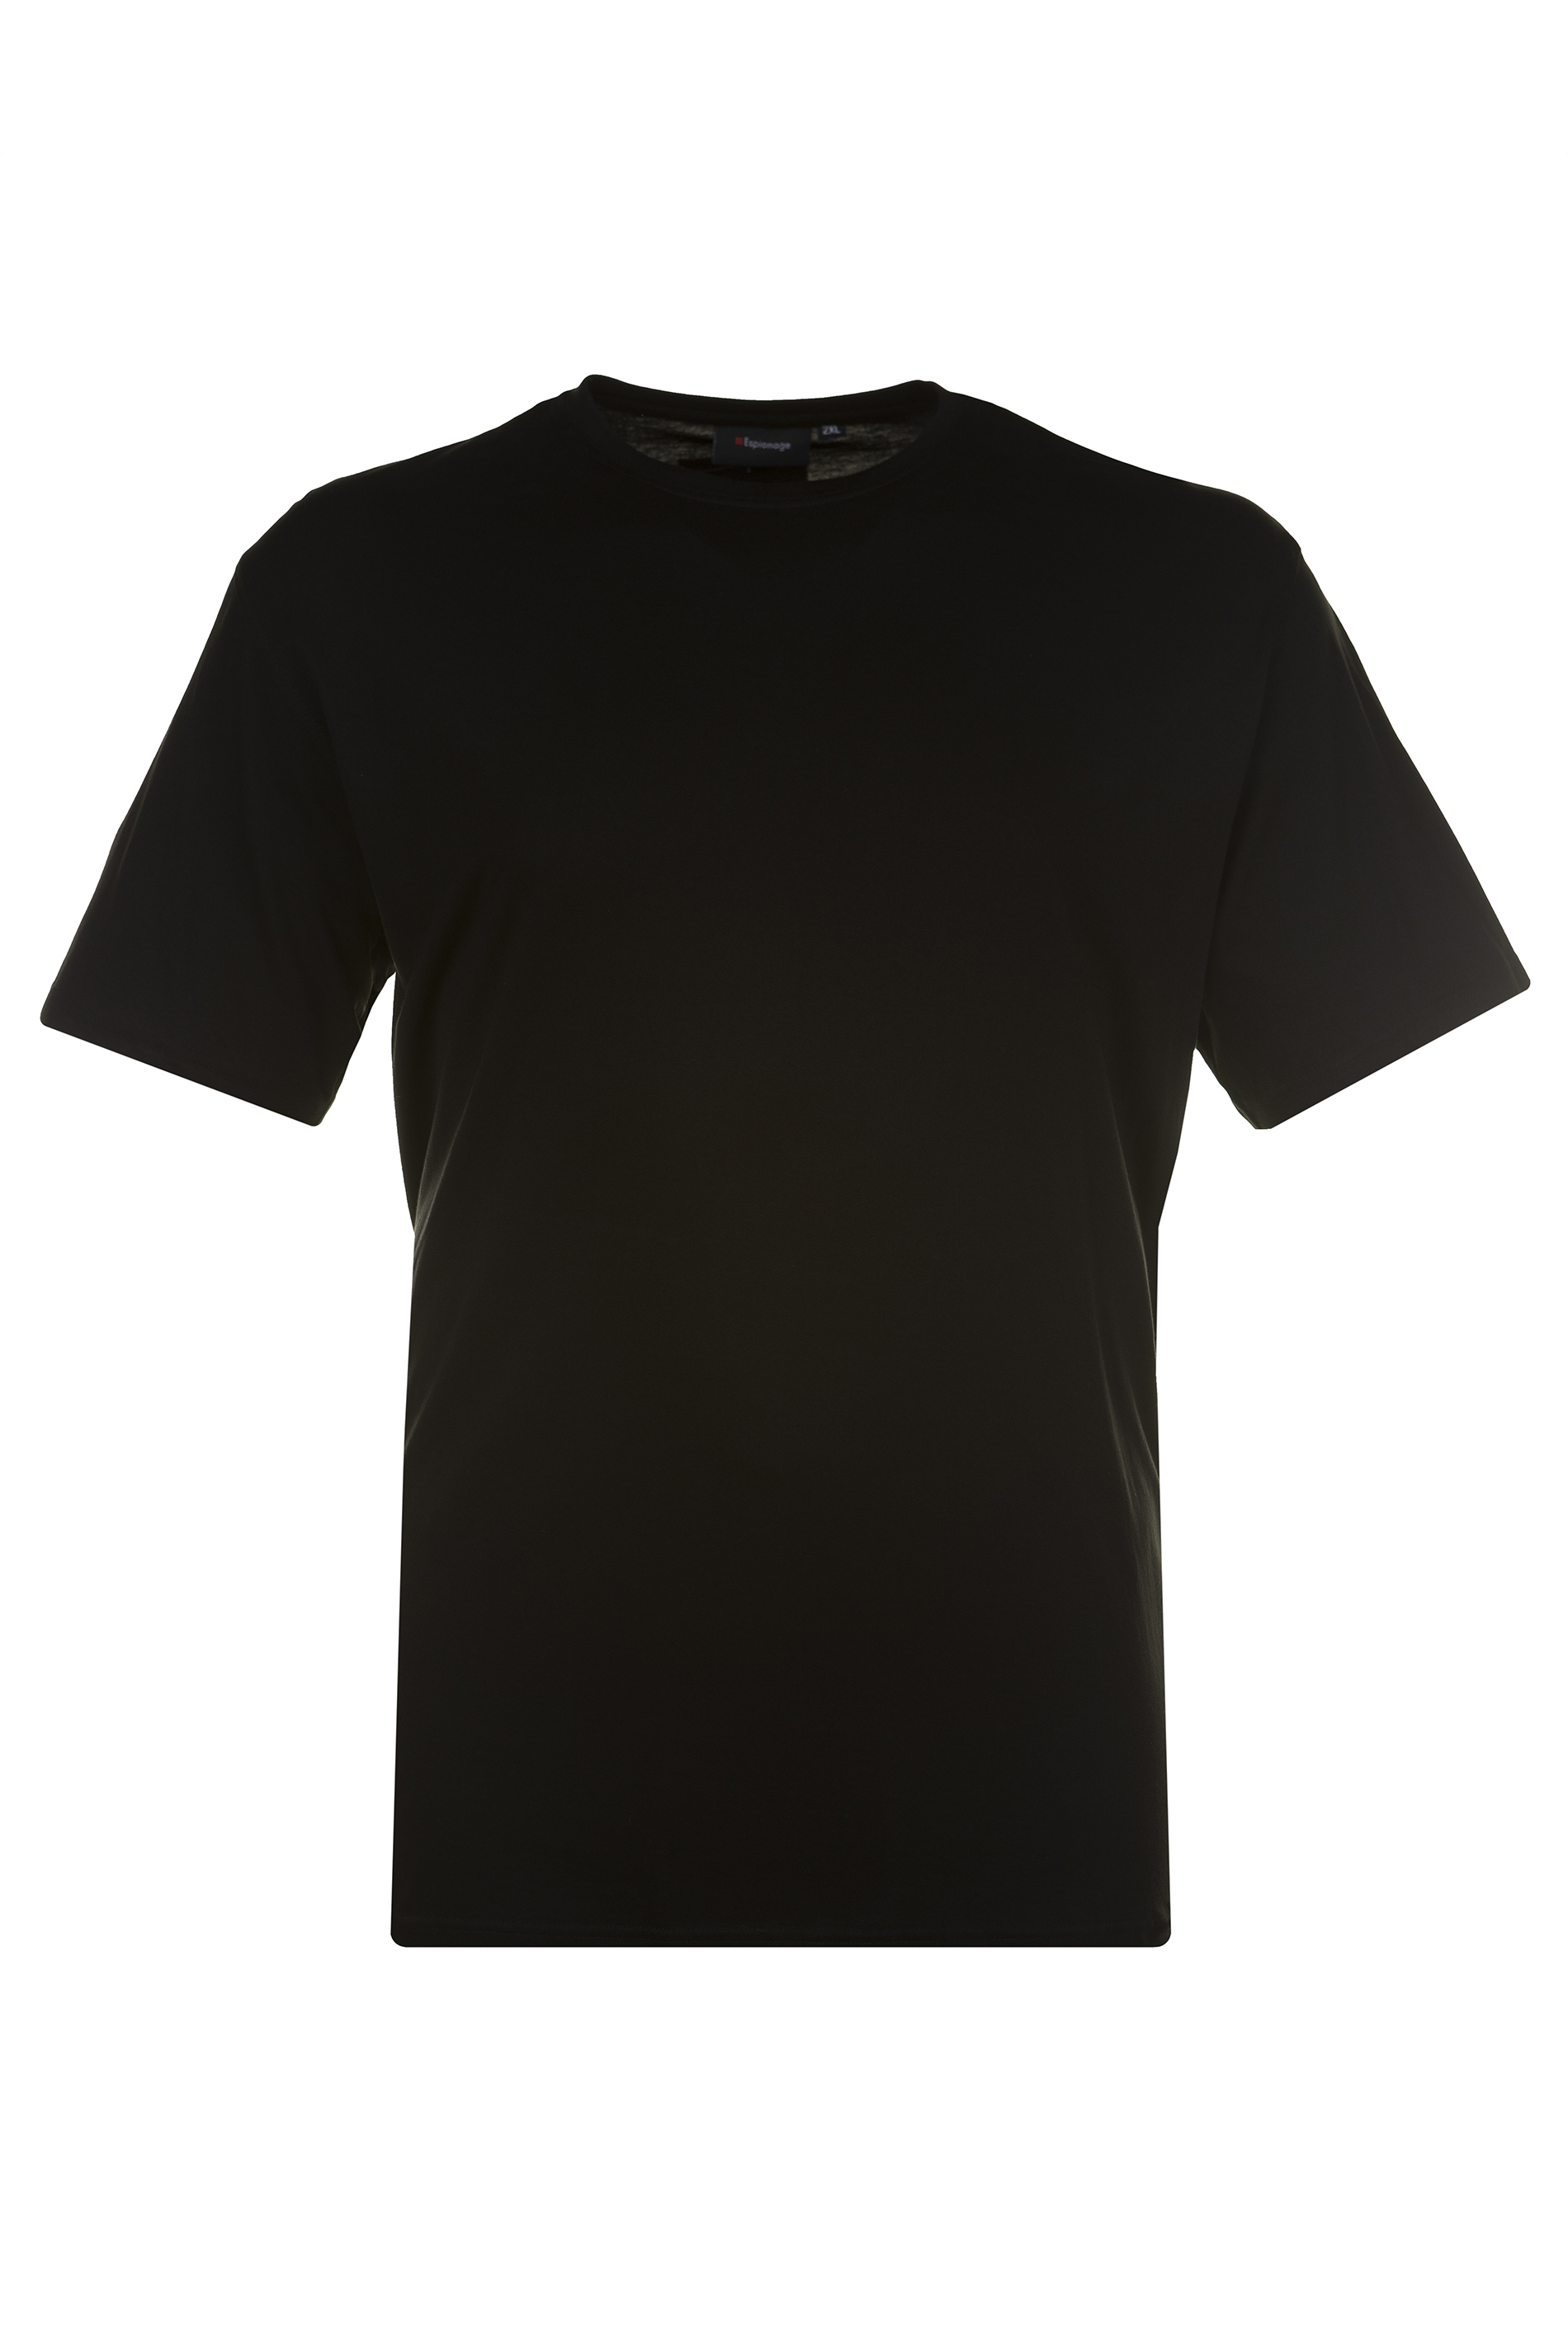 ESPIONAGE Black Basic T-Shirt